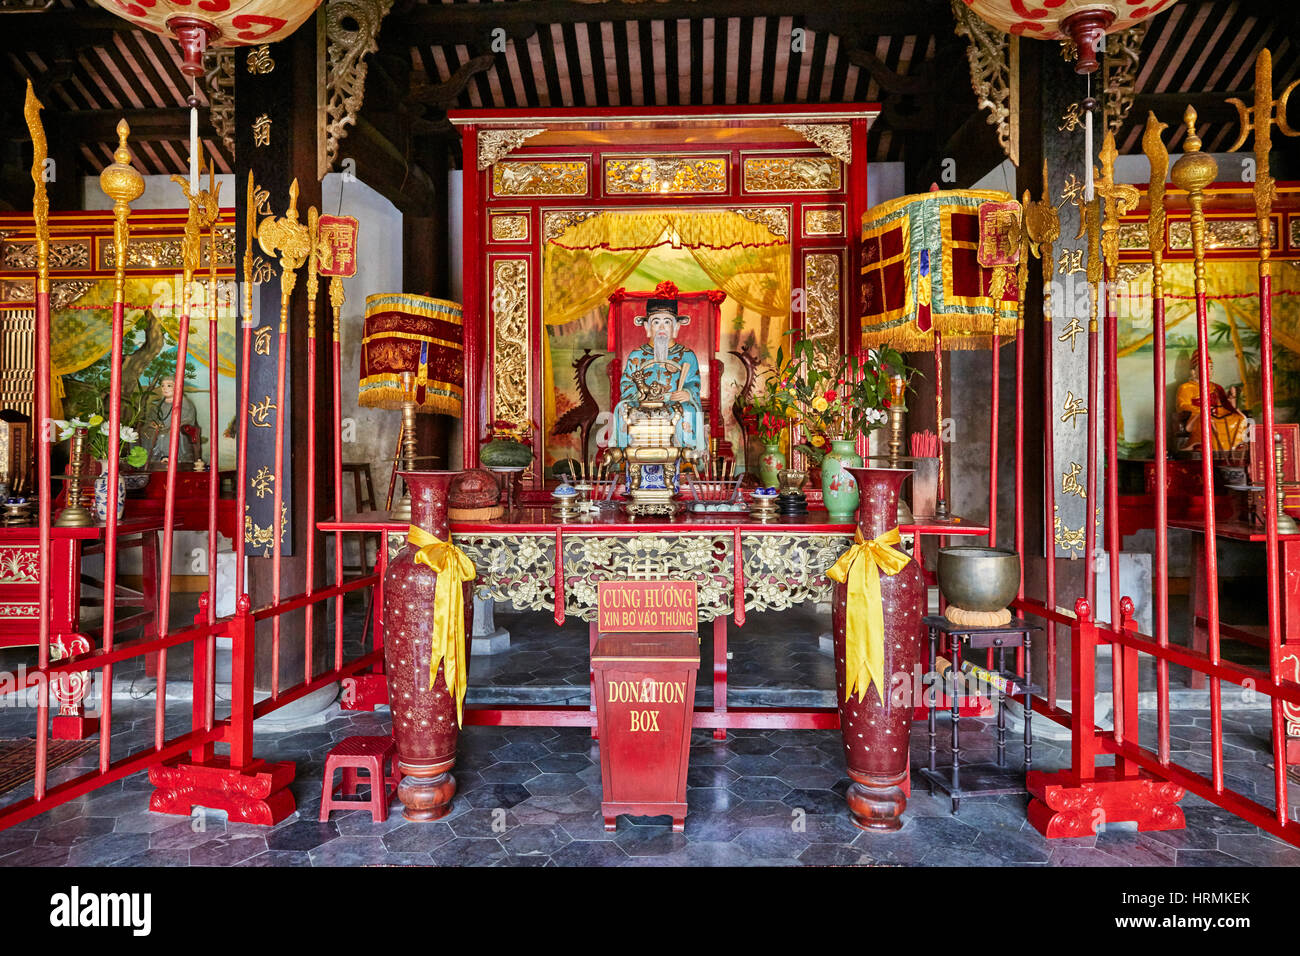 Interior of the Minh Huong Communal House. Hoi An Ancient Town, Quang Nam Province, Vietnam. - Stock Image